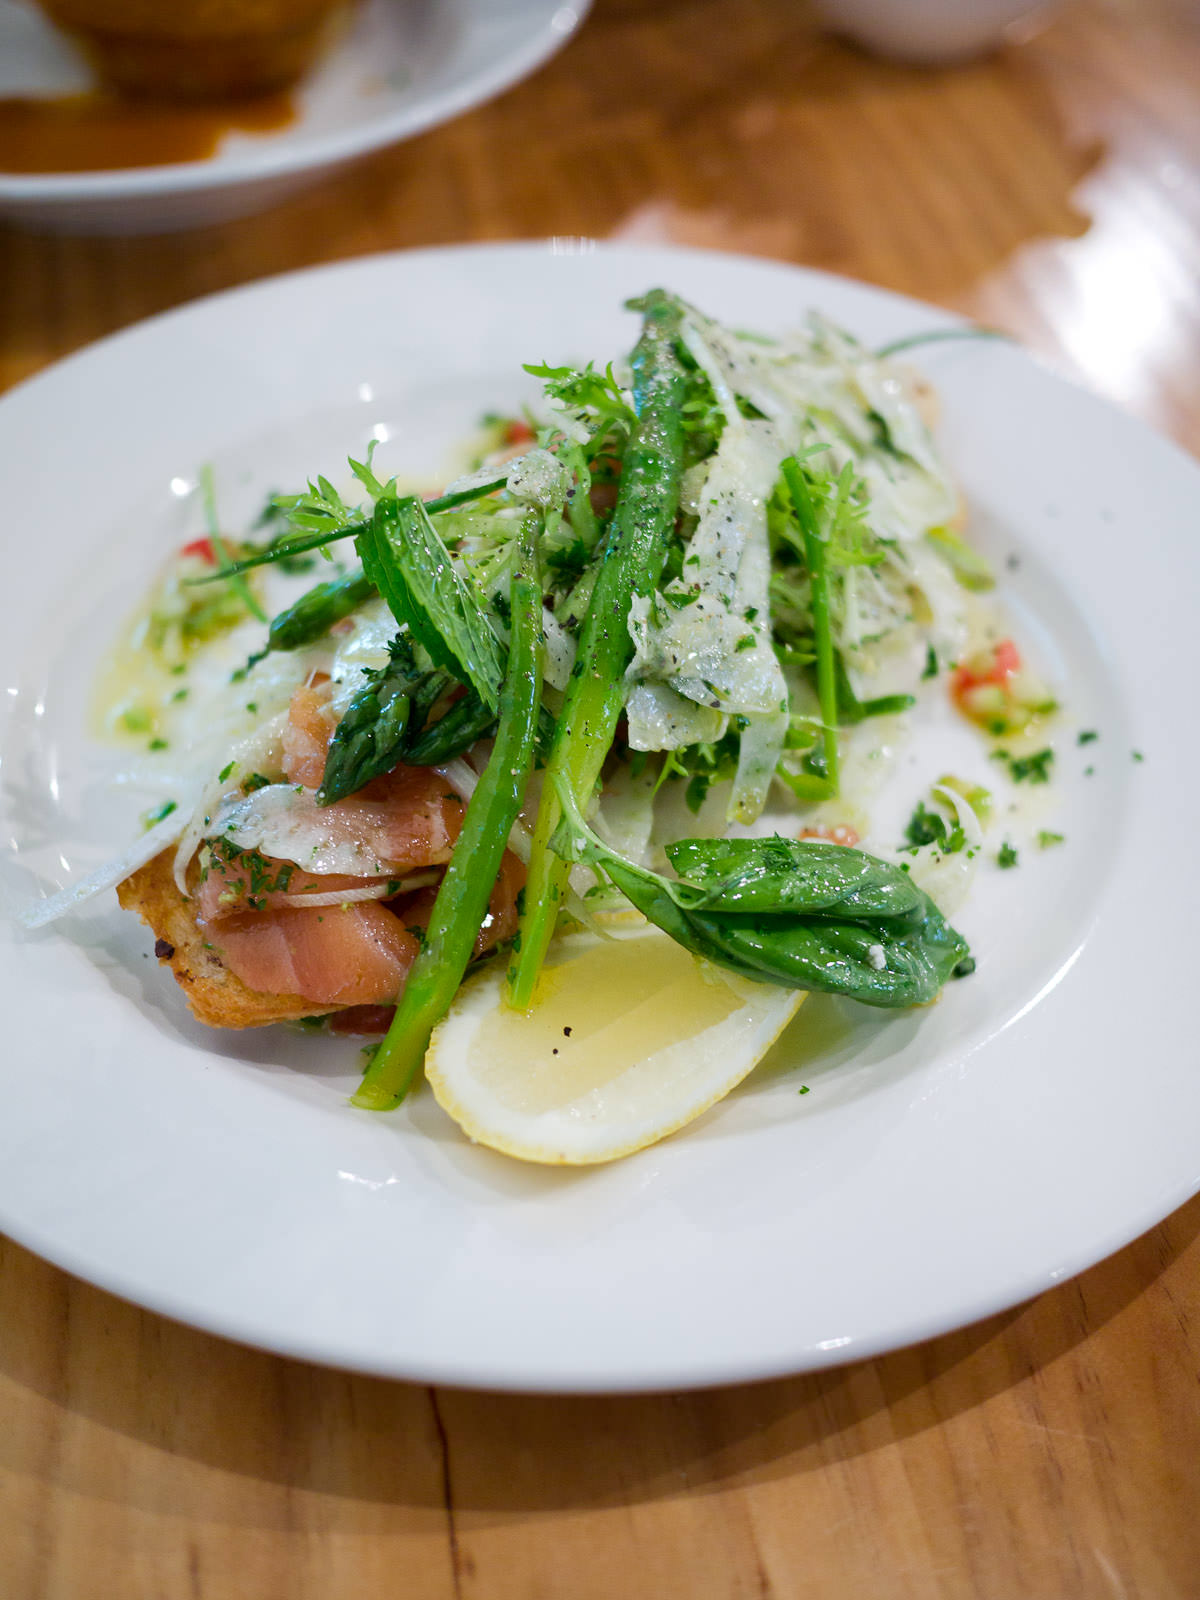 Ciabatta with Tasmanian smoked salmon, lemon ricotta, asparagus and fennel salad (AU$17)